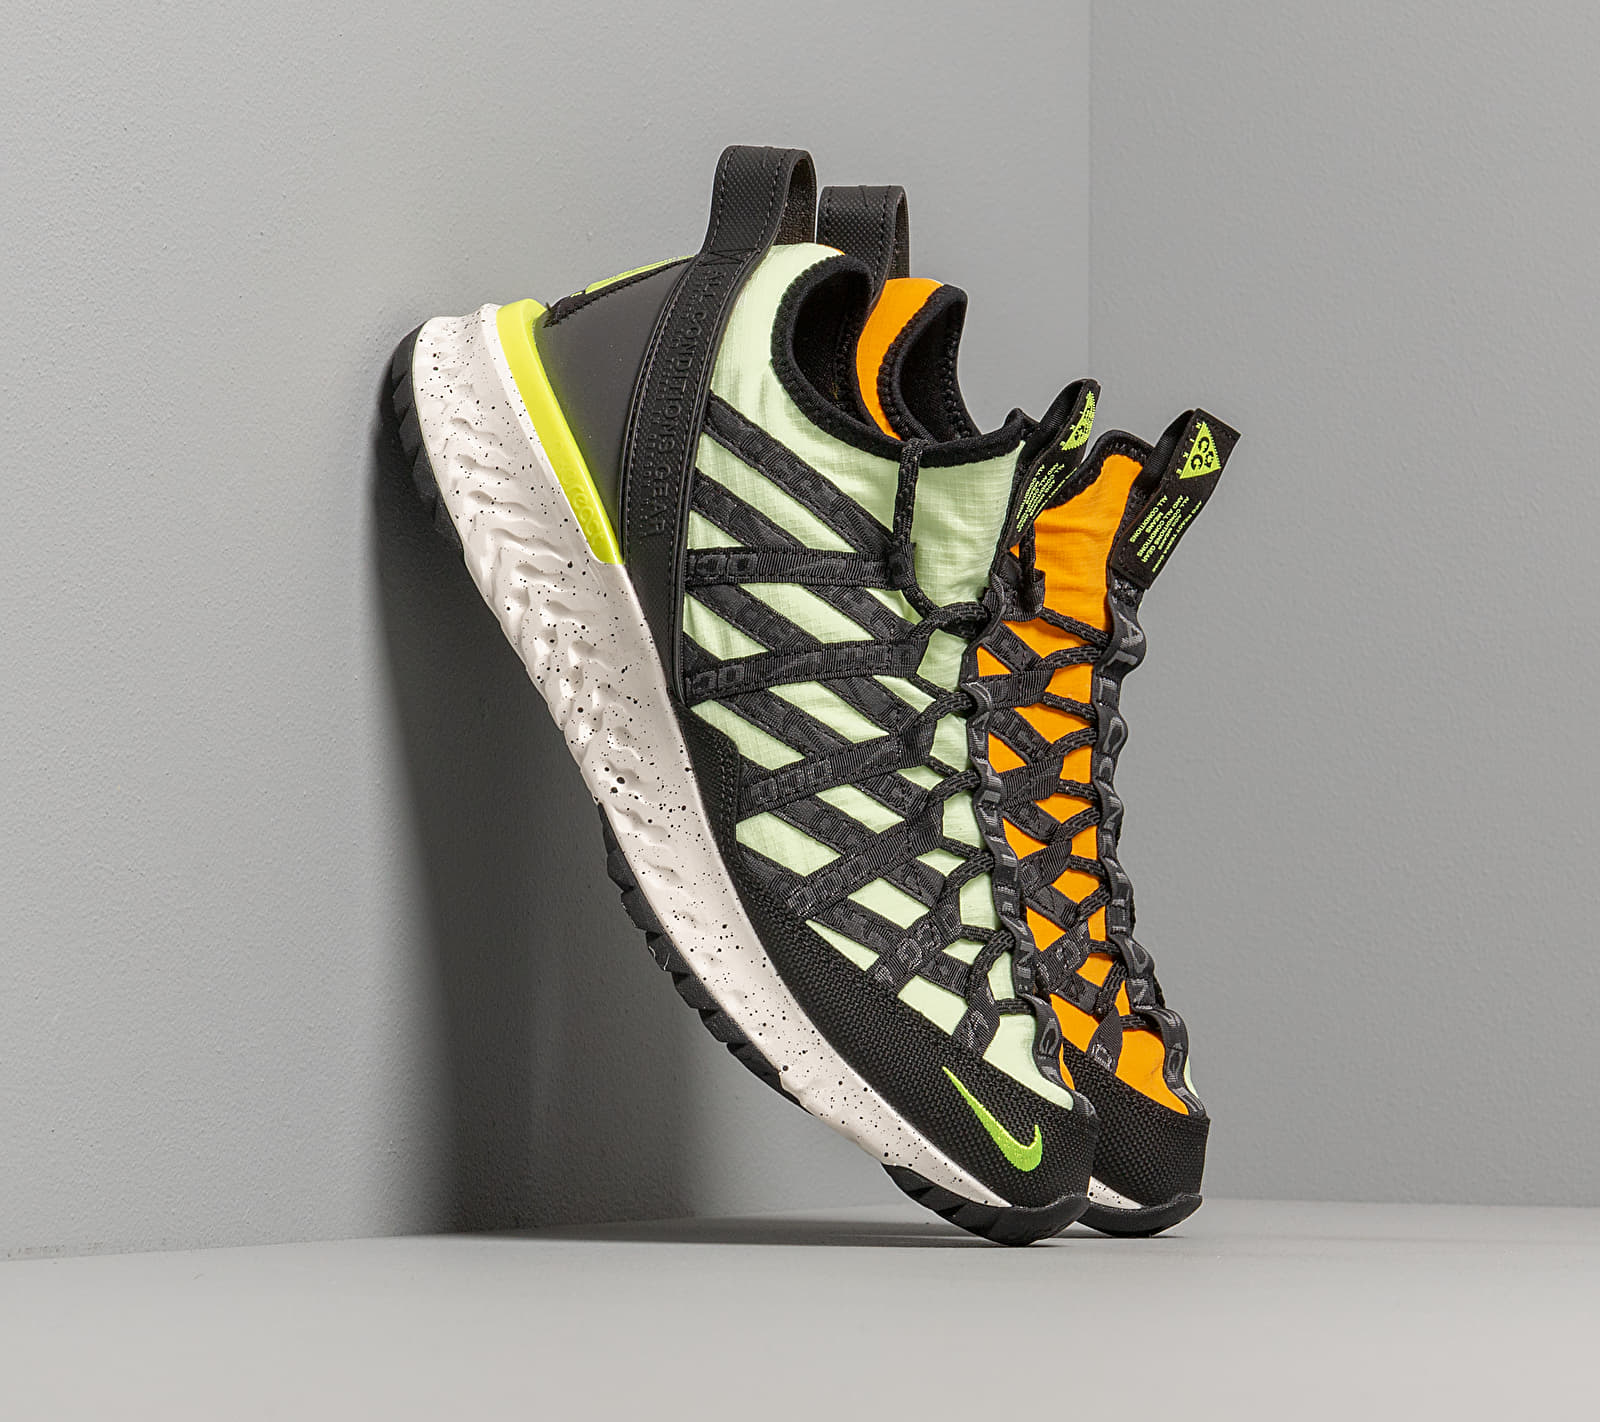 Nike ACG React Terra Gobe Barely Volt/ Volt-University Gold BV6344-701